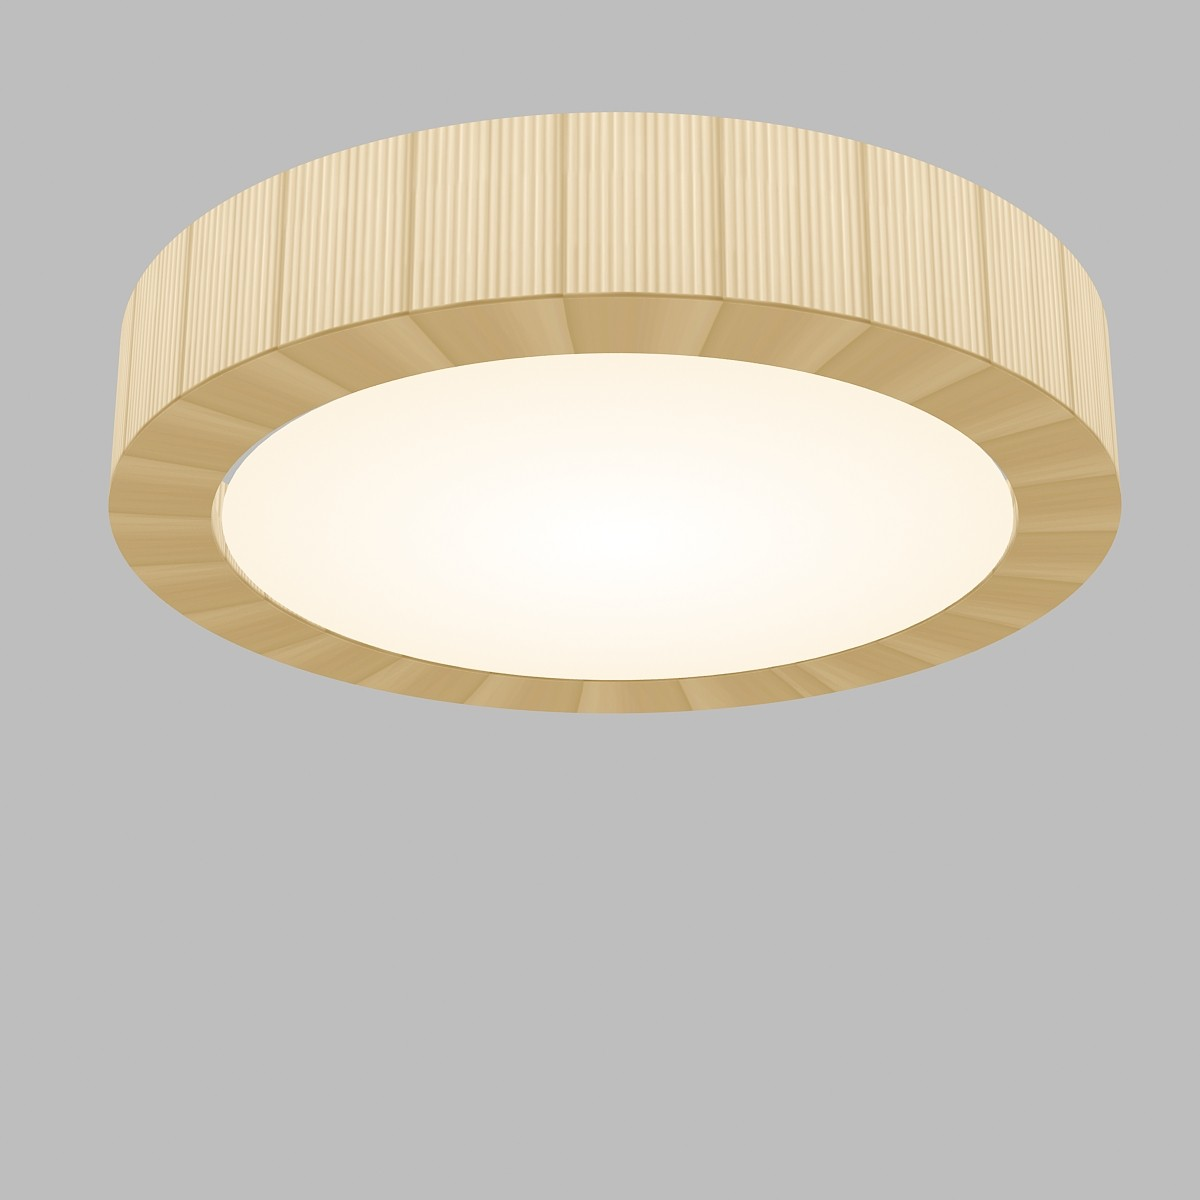 Urban - 60 ceiling lamp E27 46w Chrome-Cinta translucent Cream